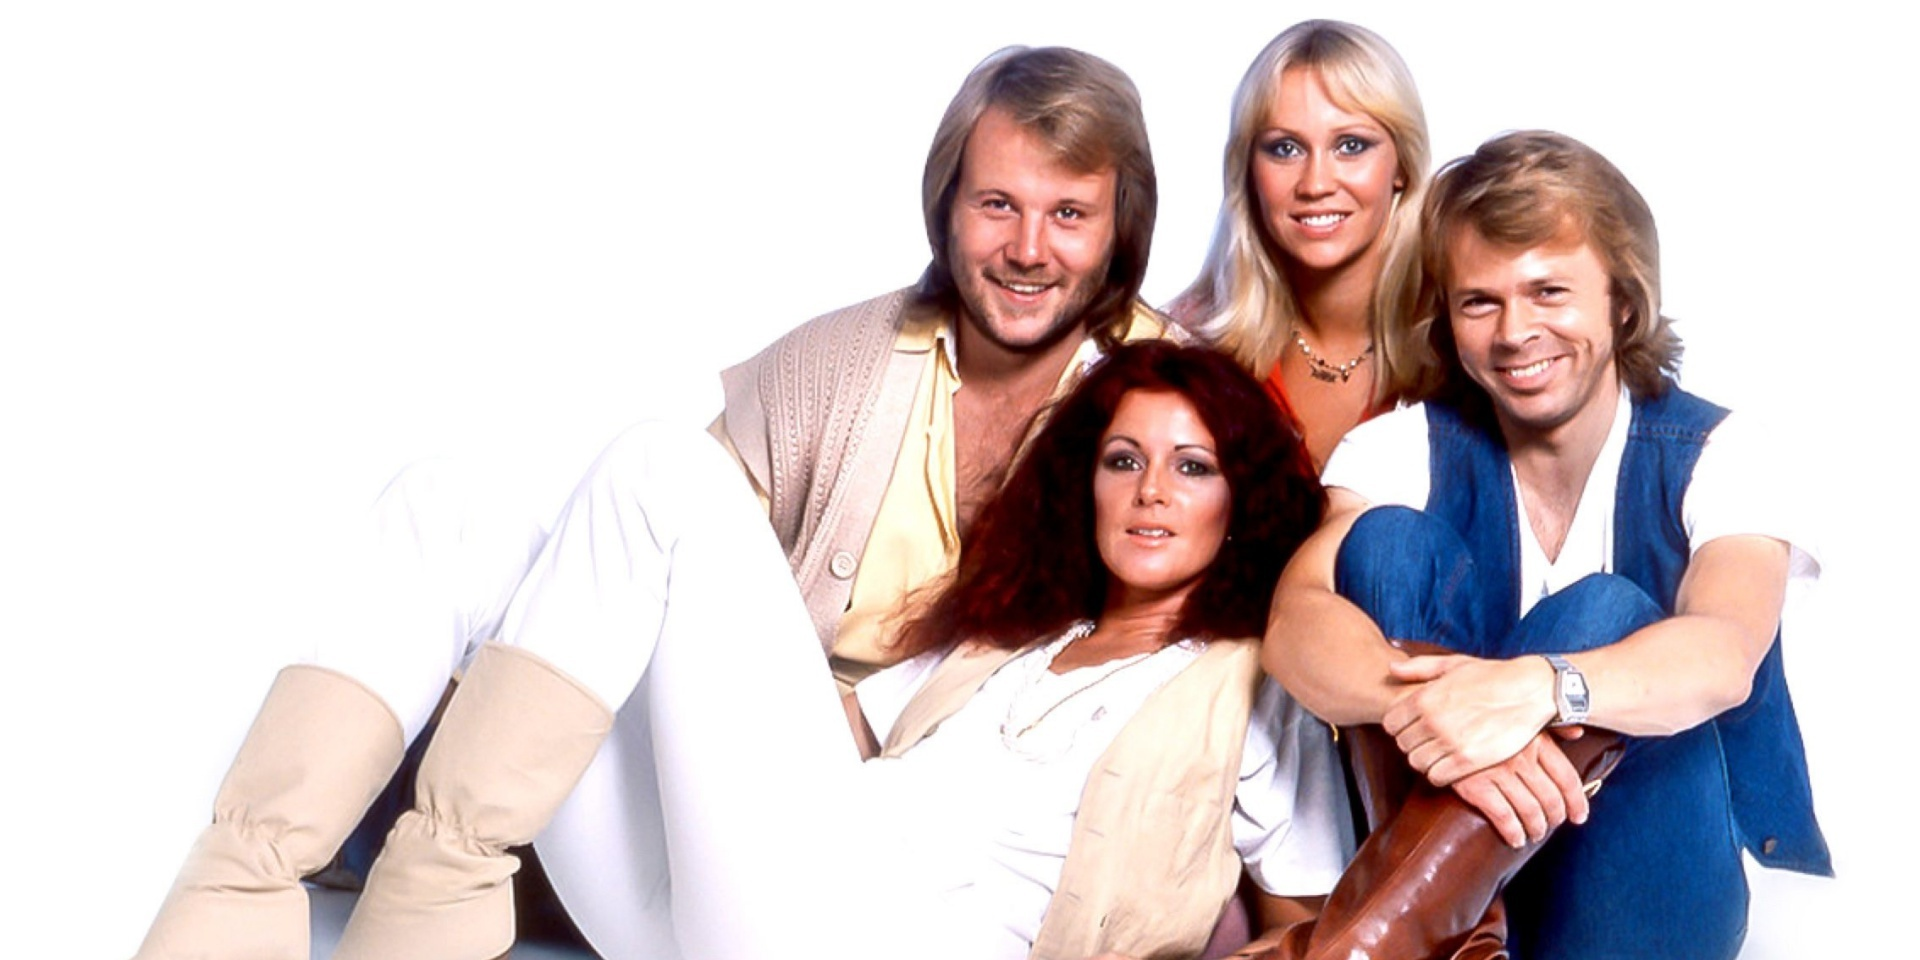 ABBA's Björn Ulvaeus reveals details on new music